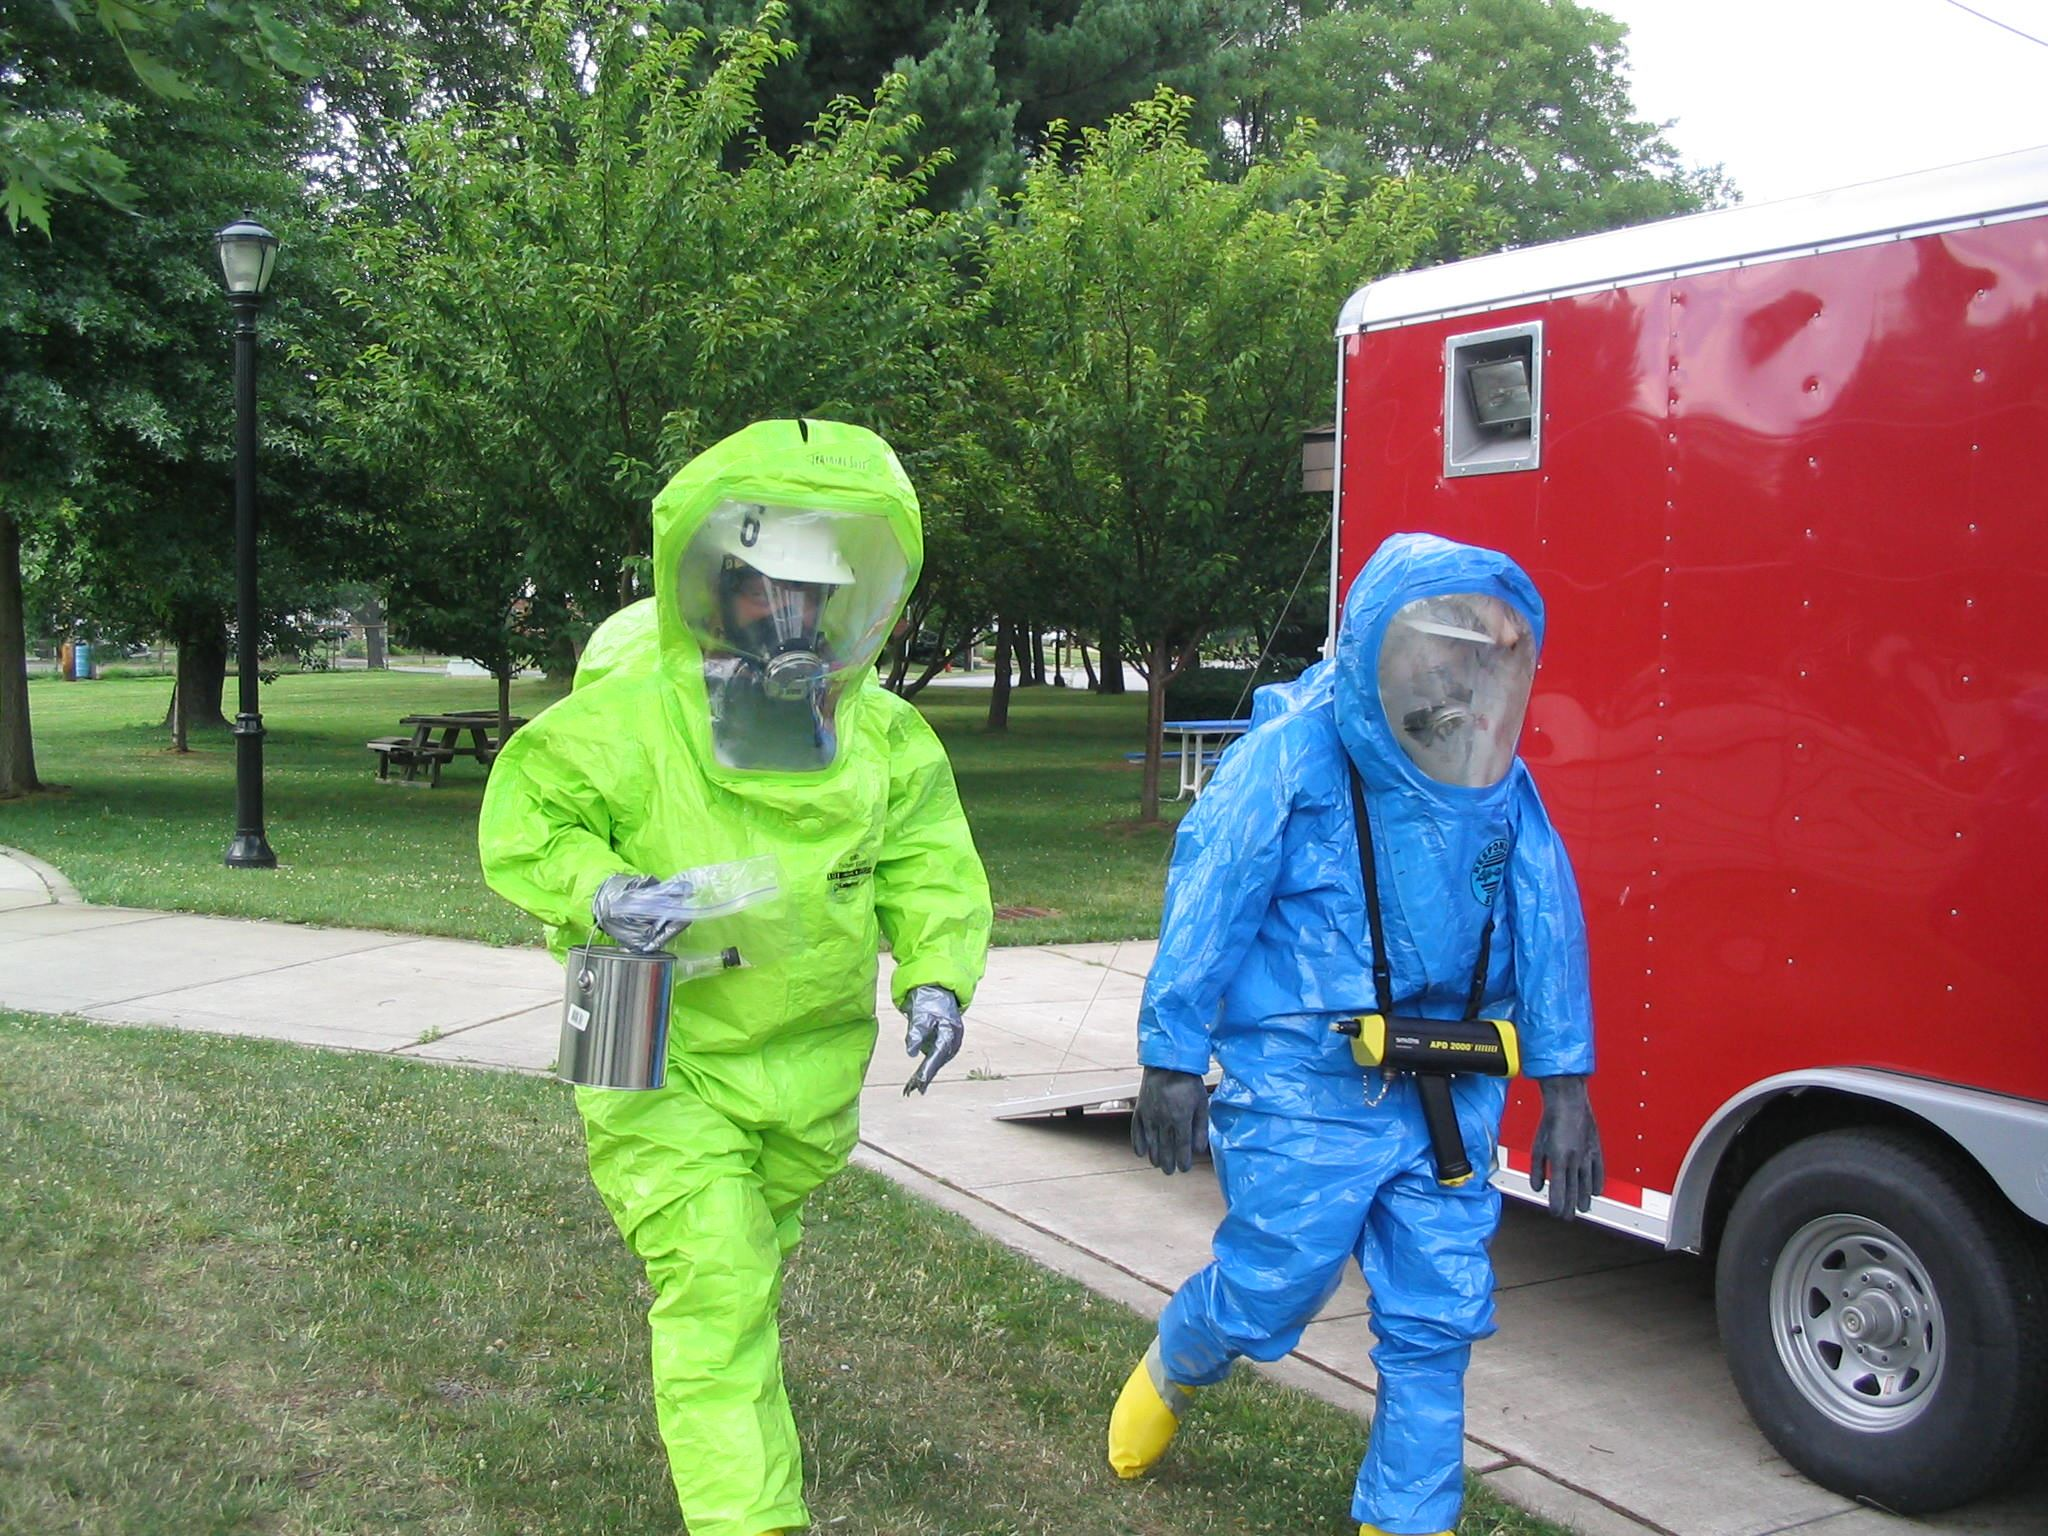 Hazmat Green and Blue Suits